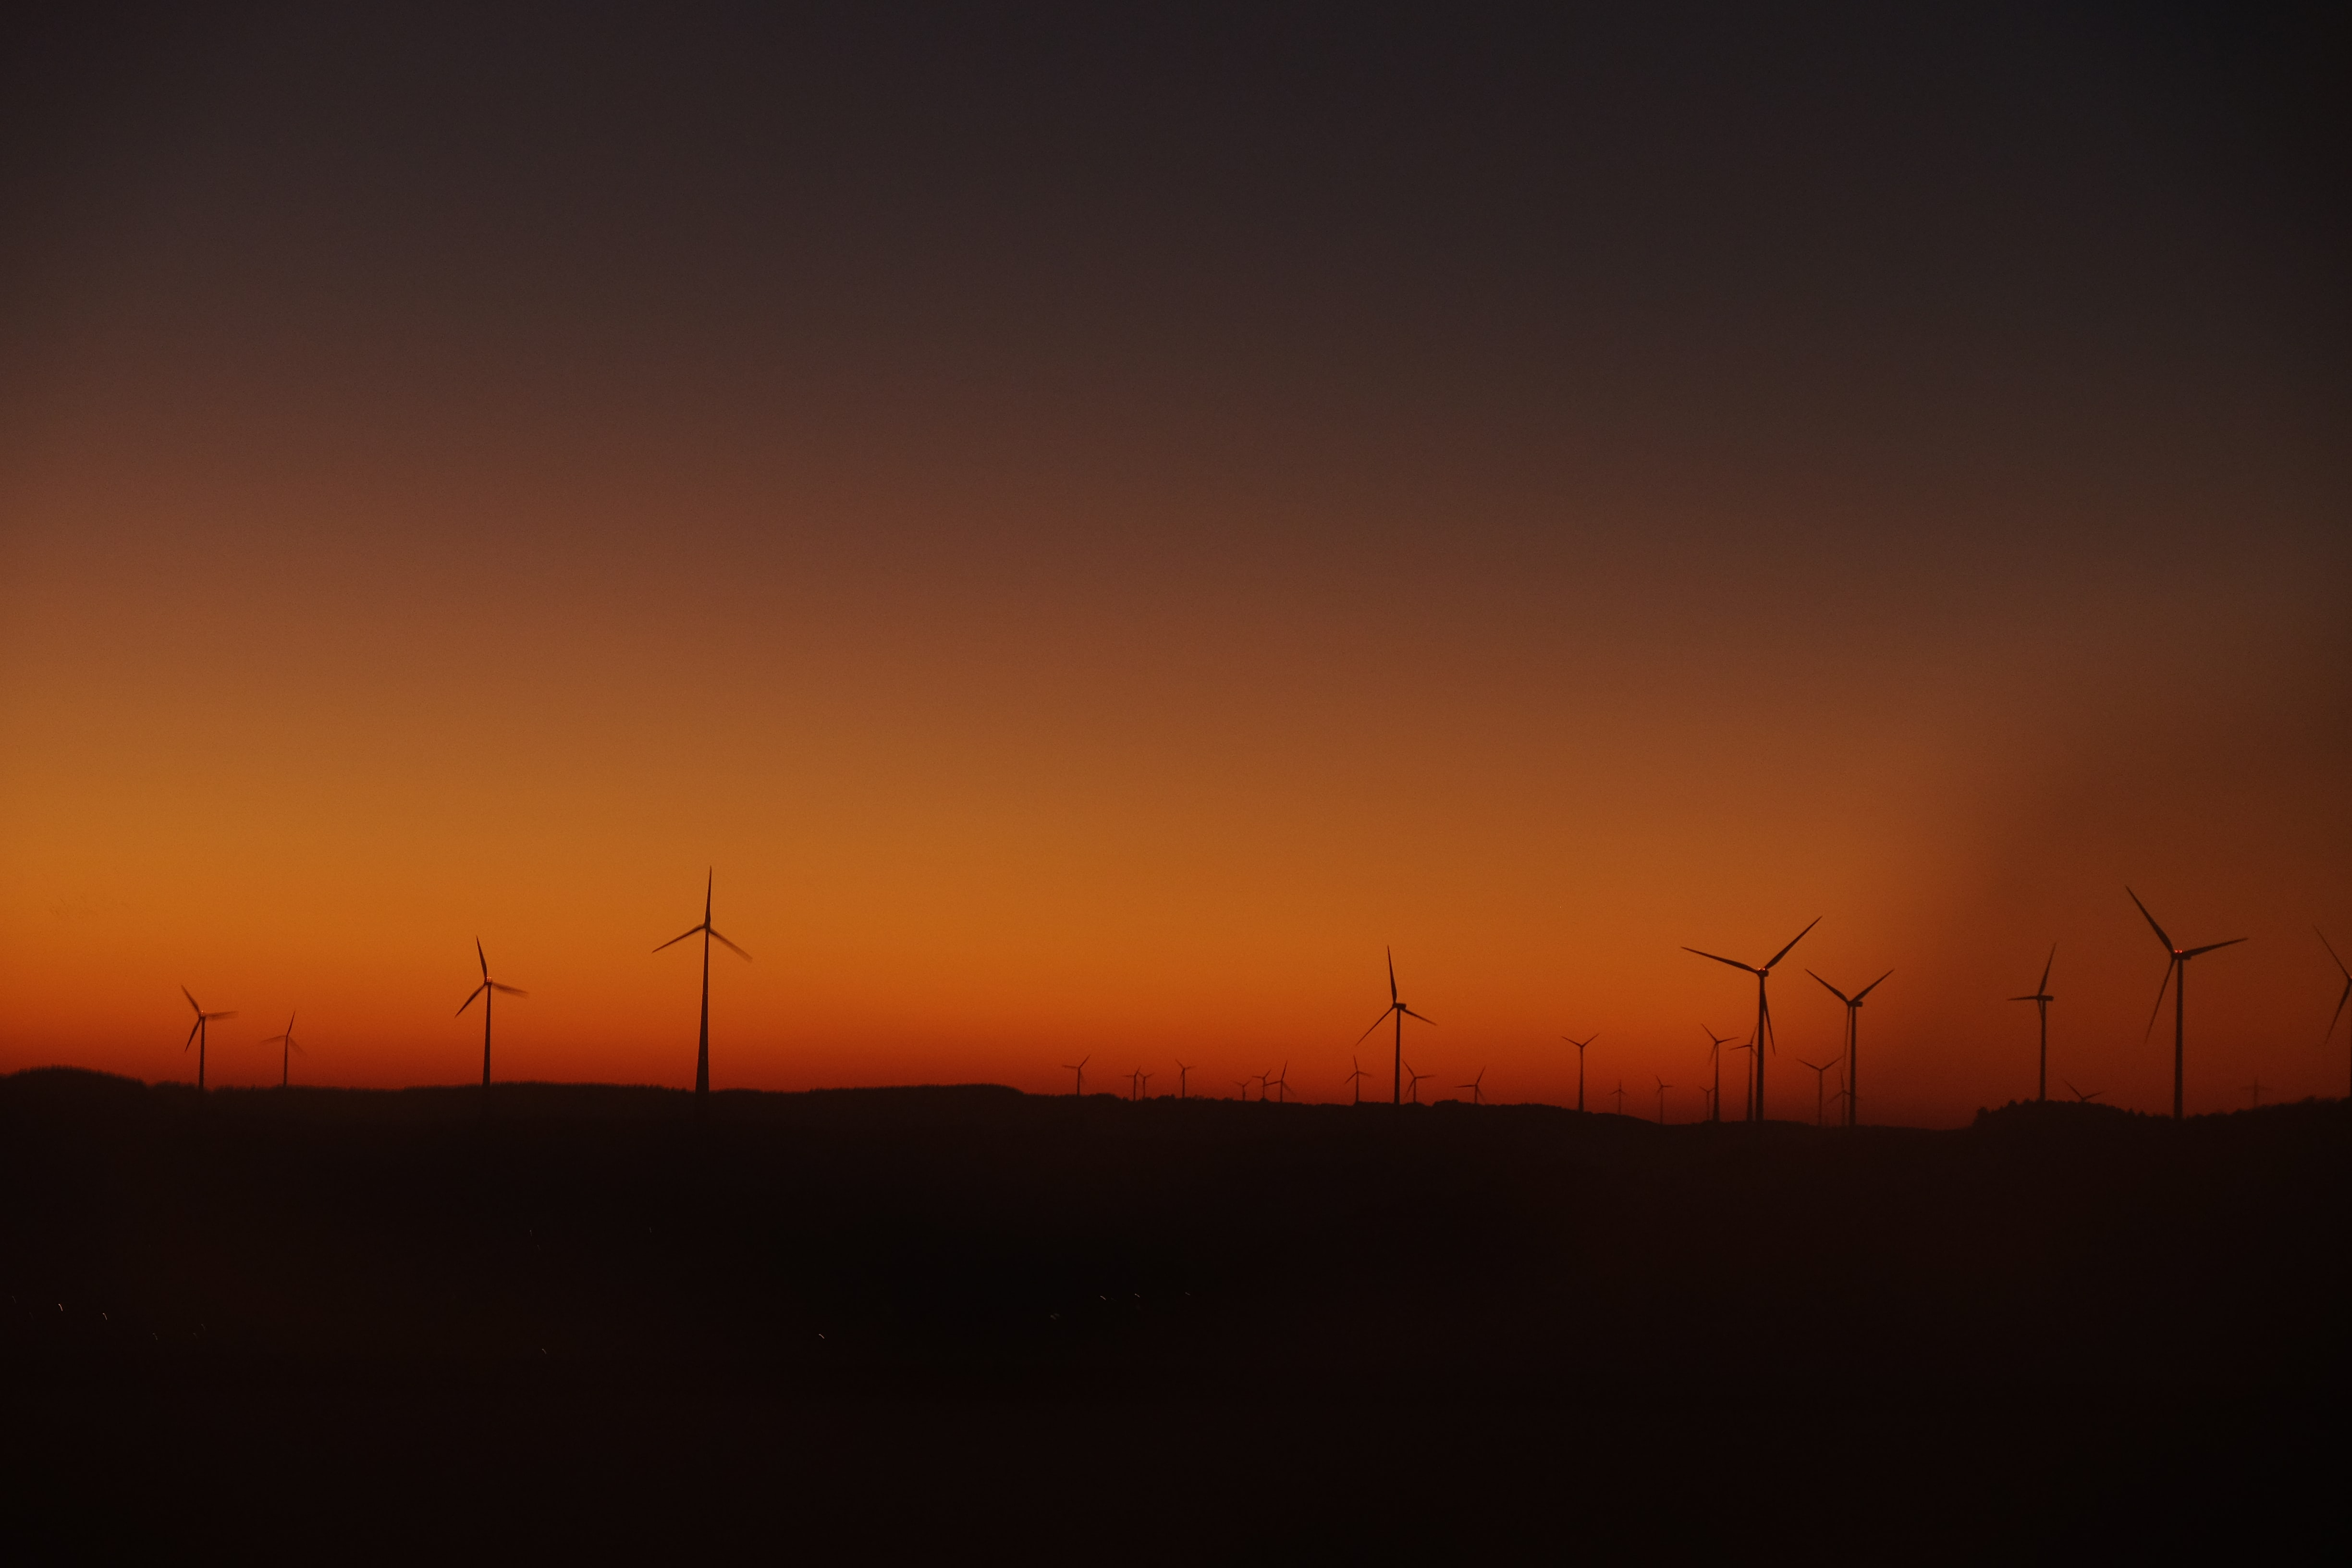 Wind turbine silhouettes at sunset against an orange and red sky in Belgium